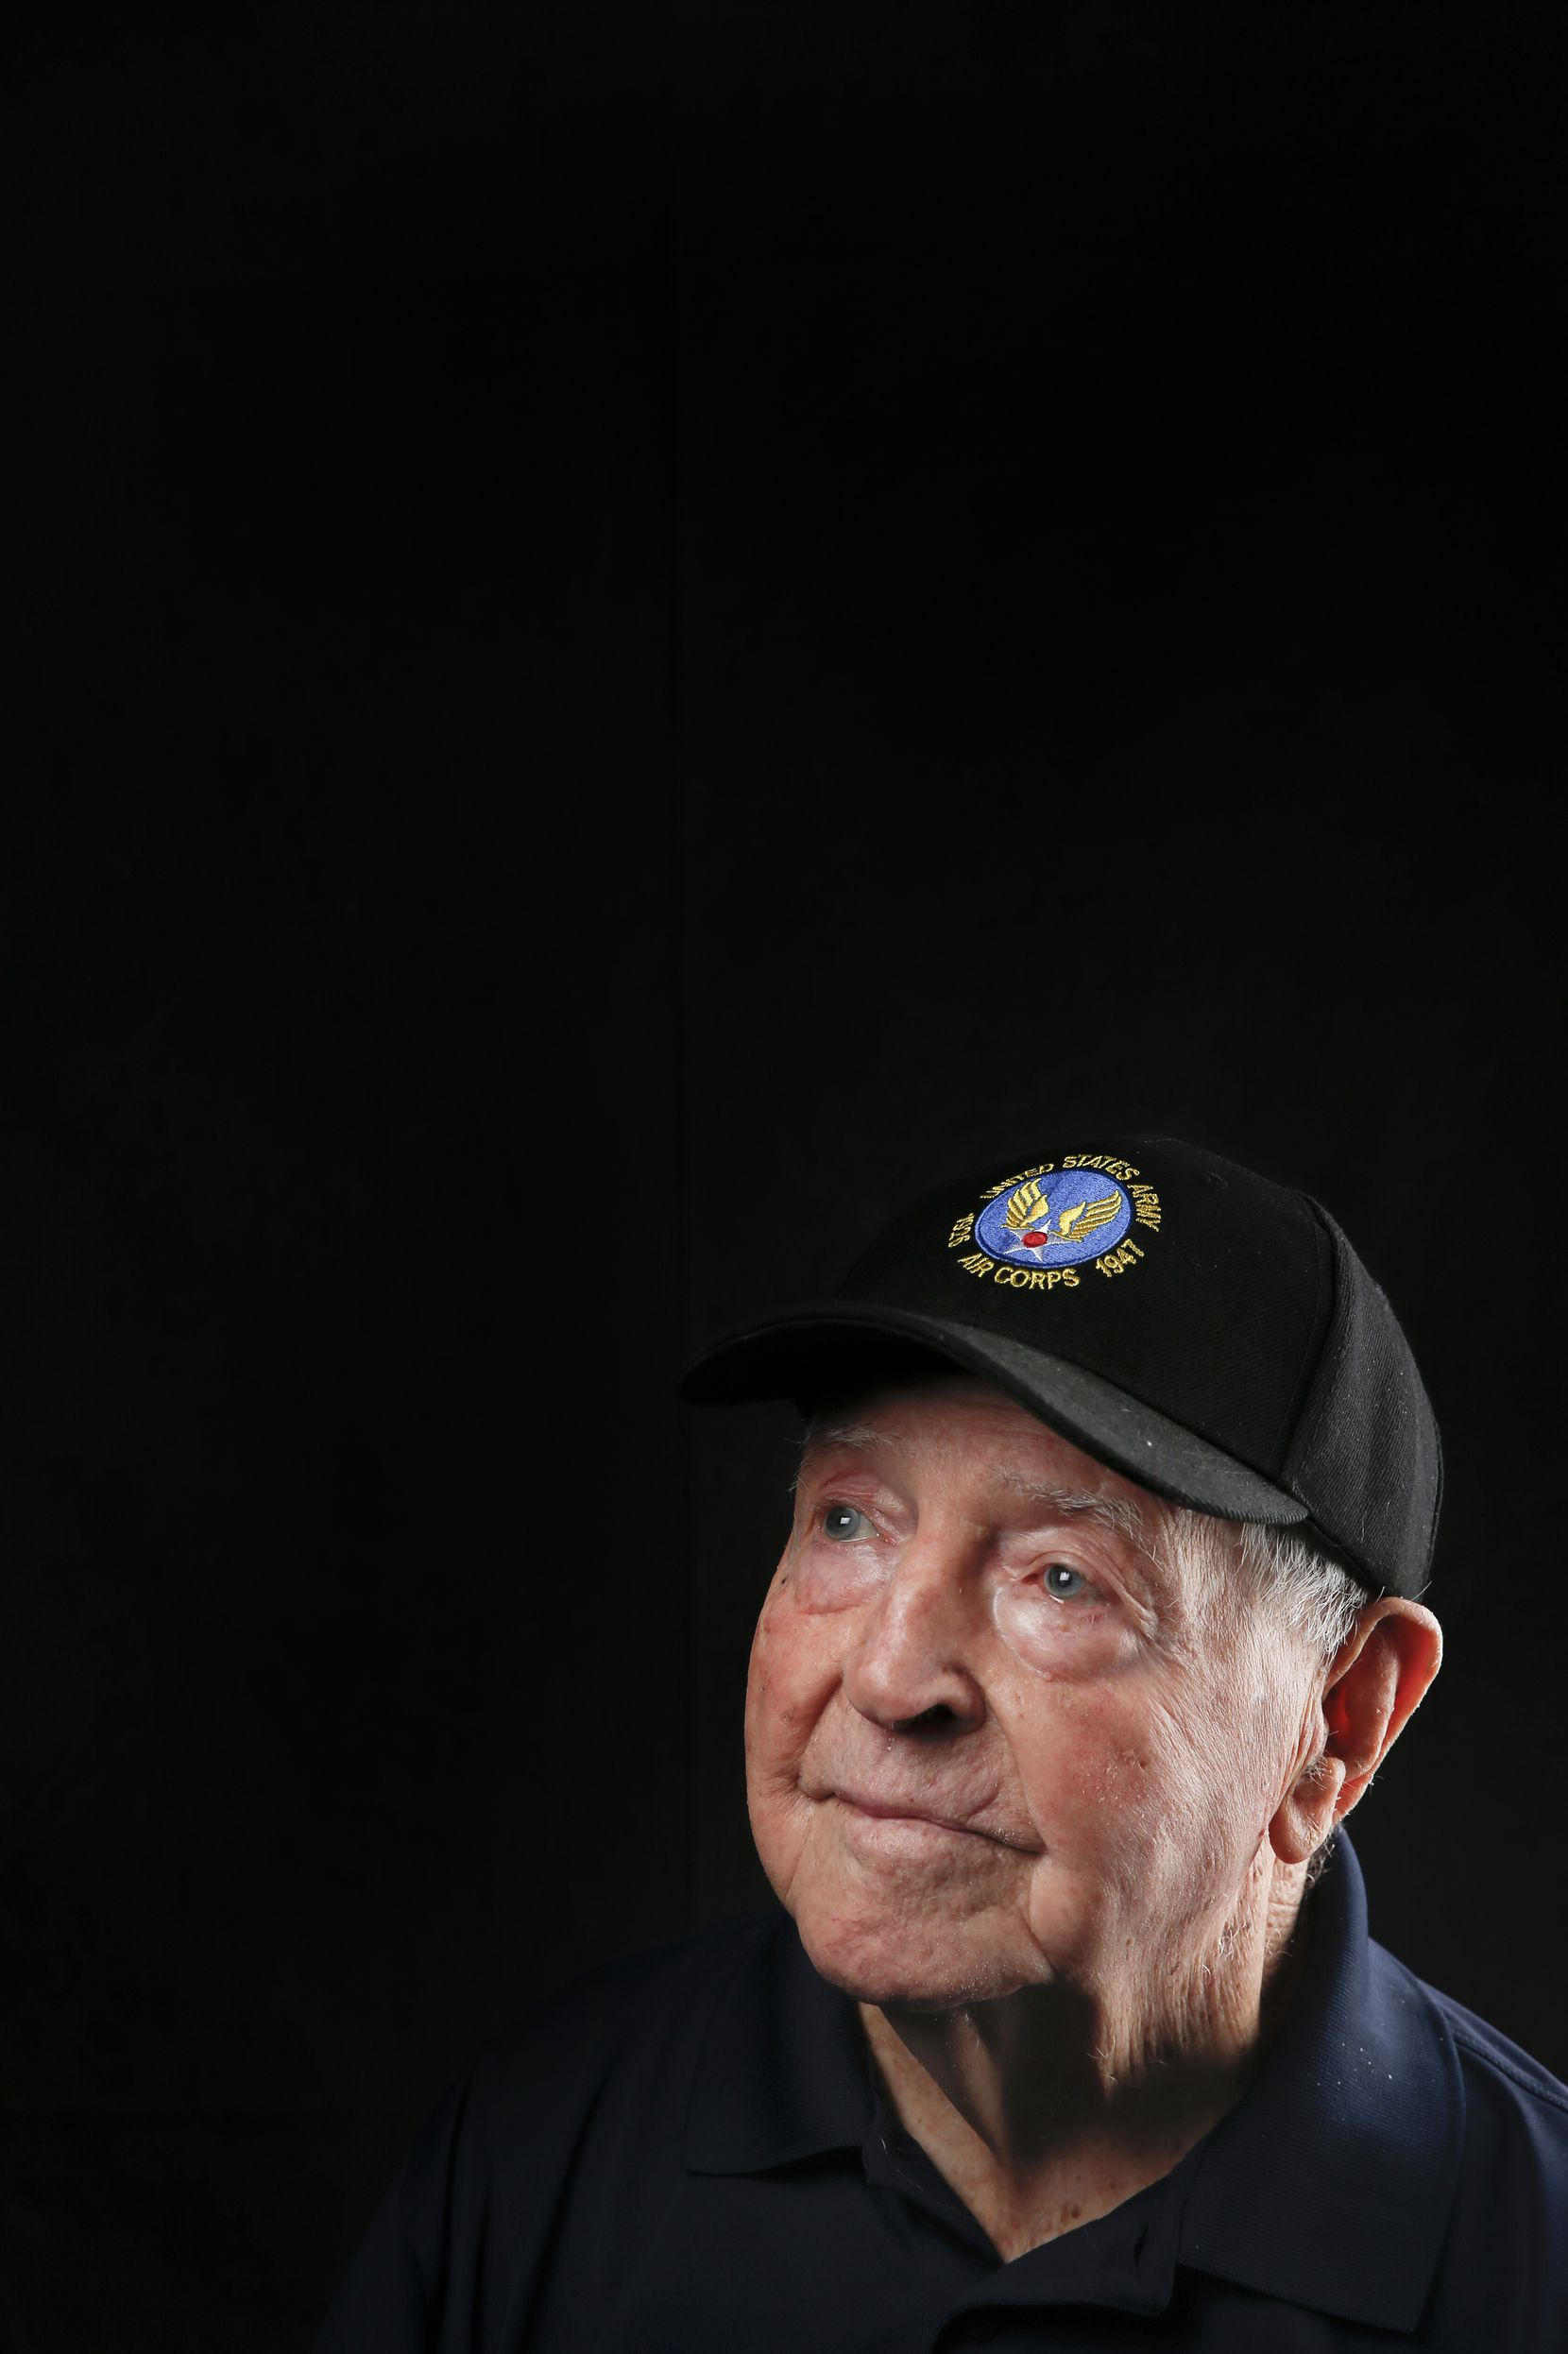 Ed Gray, 101, of Dallas, a first lieutenant who served as a World War II P-38, P-40, P-47 pilot in the 19th Fighter Squadron, is photographed during the Wings Over Dallas Airshow on Saturday, Oct. 26, 2019 in Dallas.